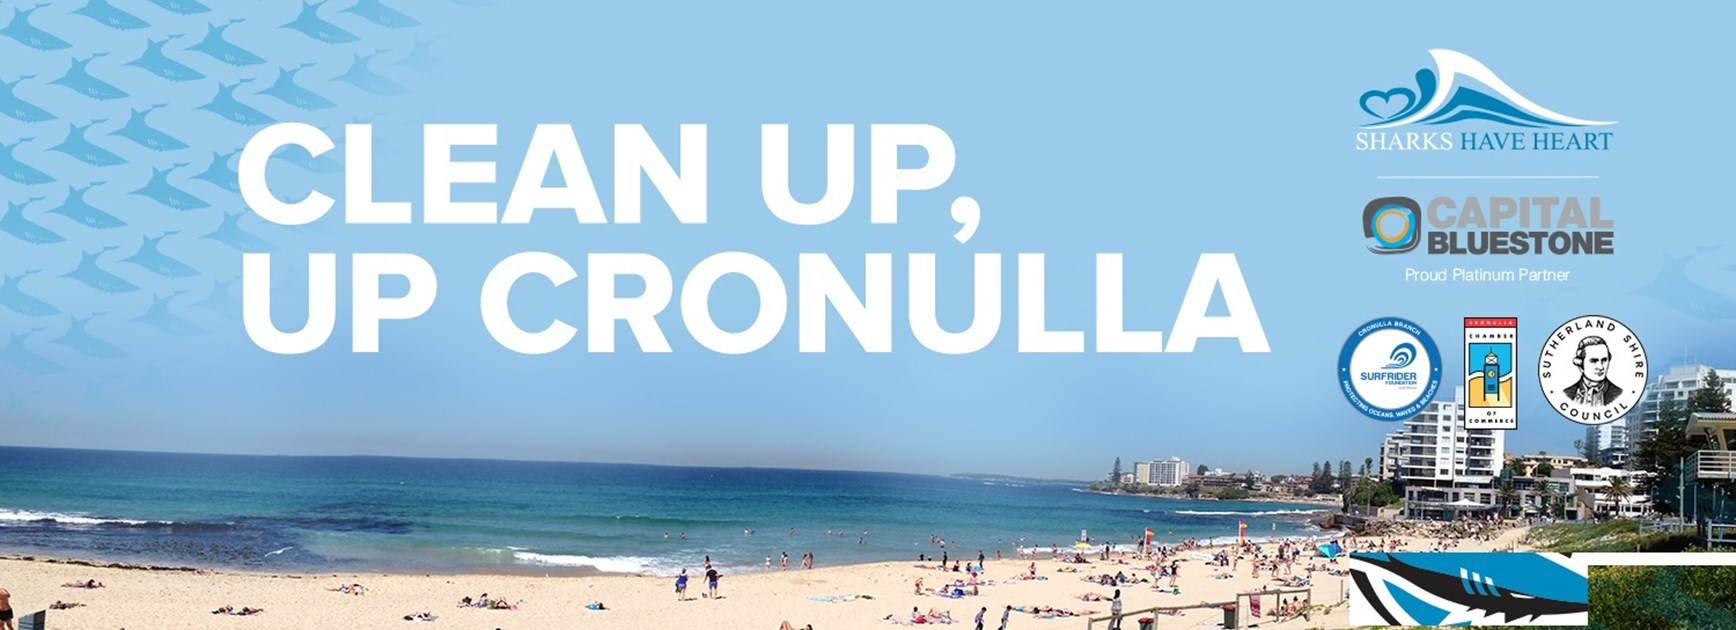 Clean Up, Up Cronulla Day!